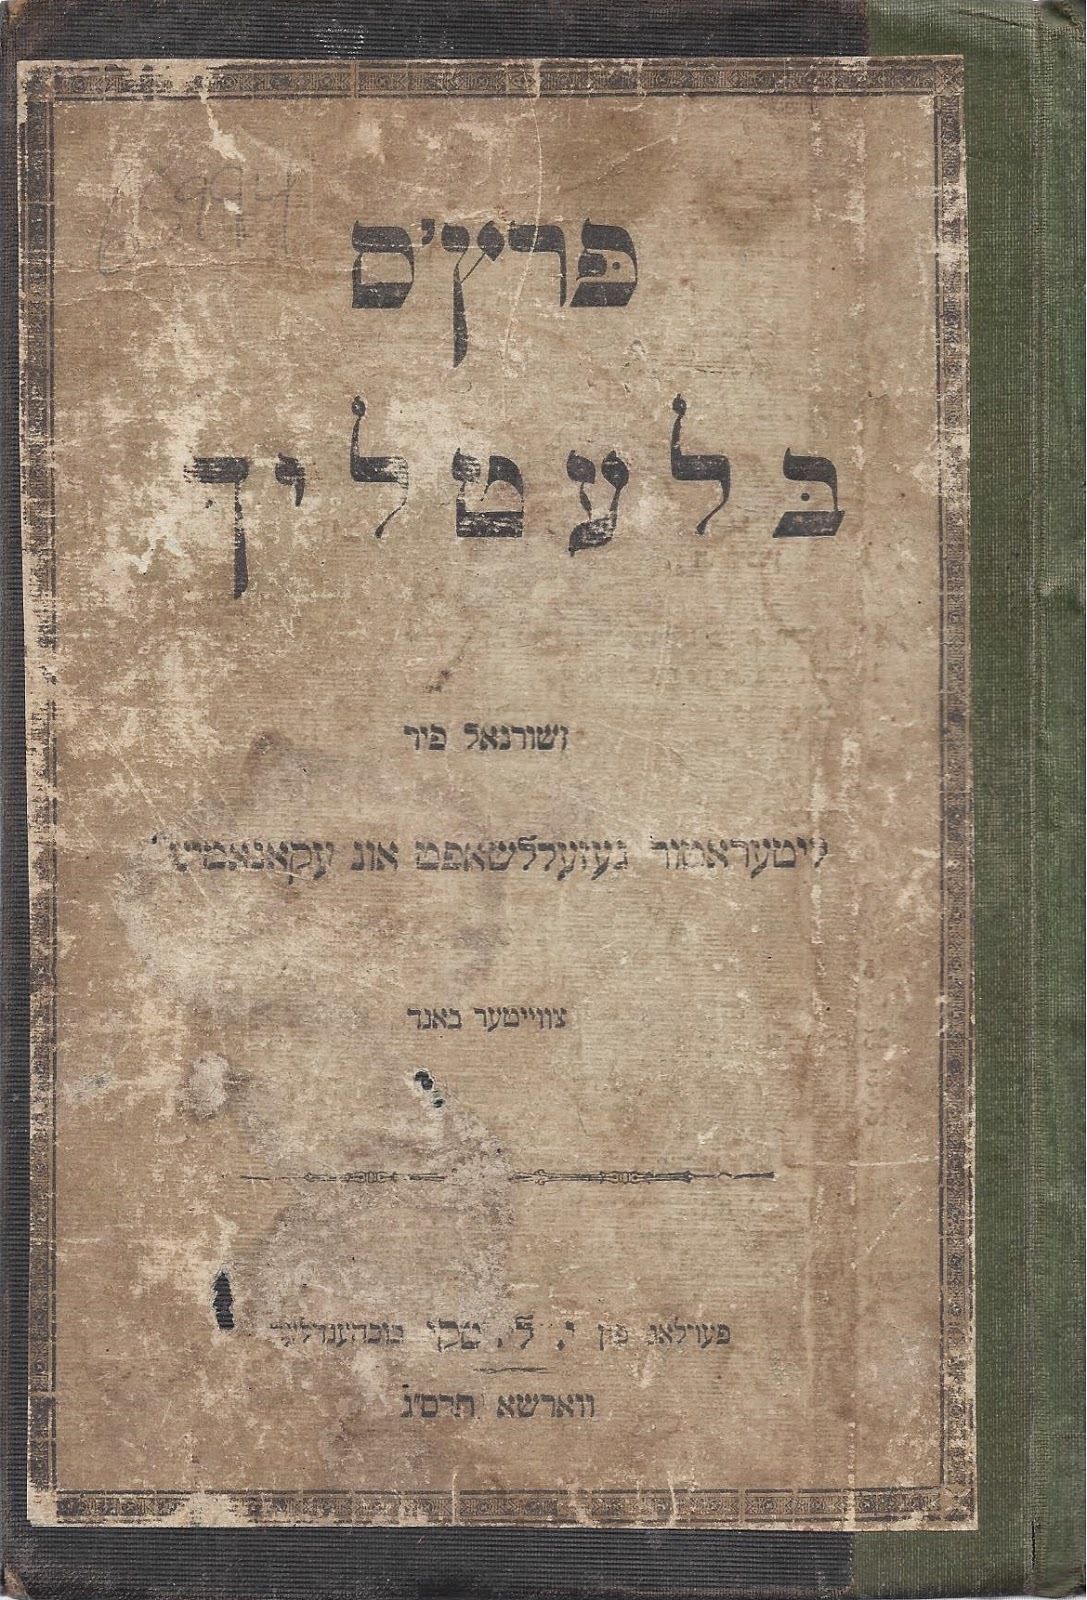 <p>Cover of <em>Yontef</em><em> bletlekh</em>, second edition,&nbsp;1913.</p>